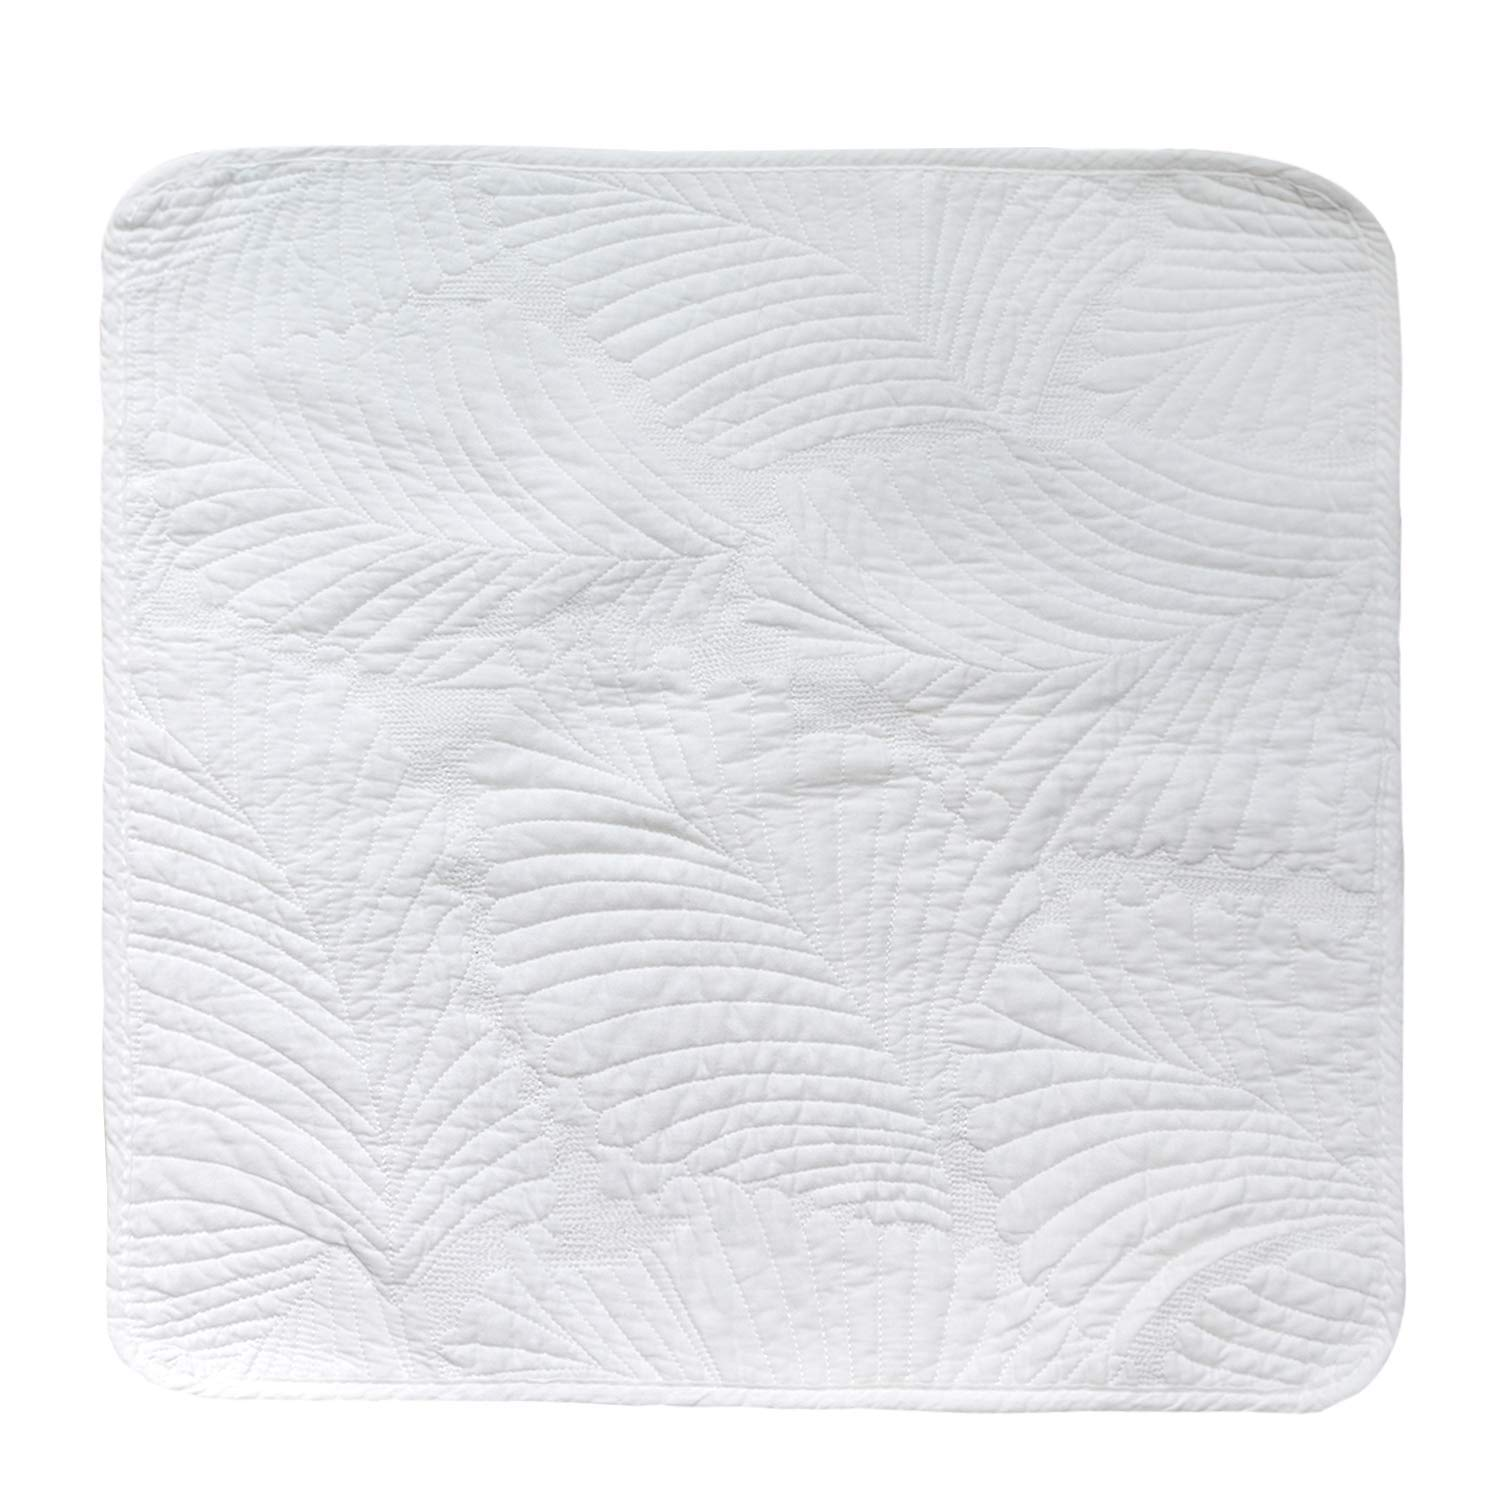 Brandream Quilted Throw Pillow Cover White Paisley Decorative Pillow Cases 18 X 18 100/% Cotton